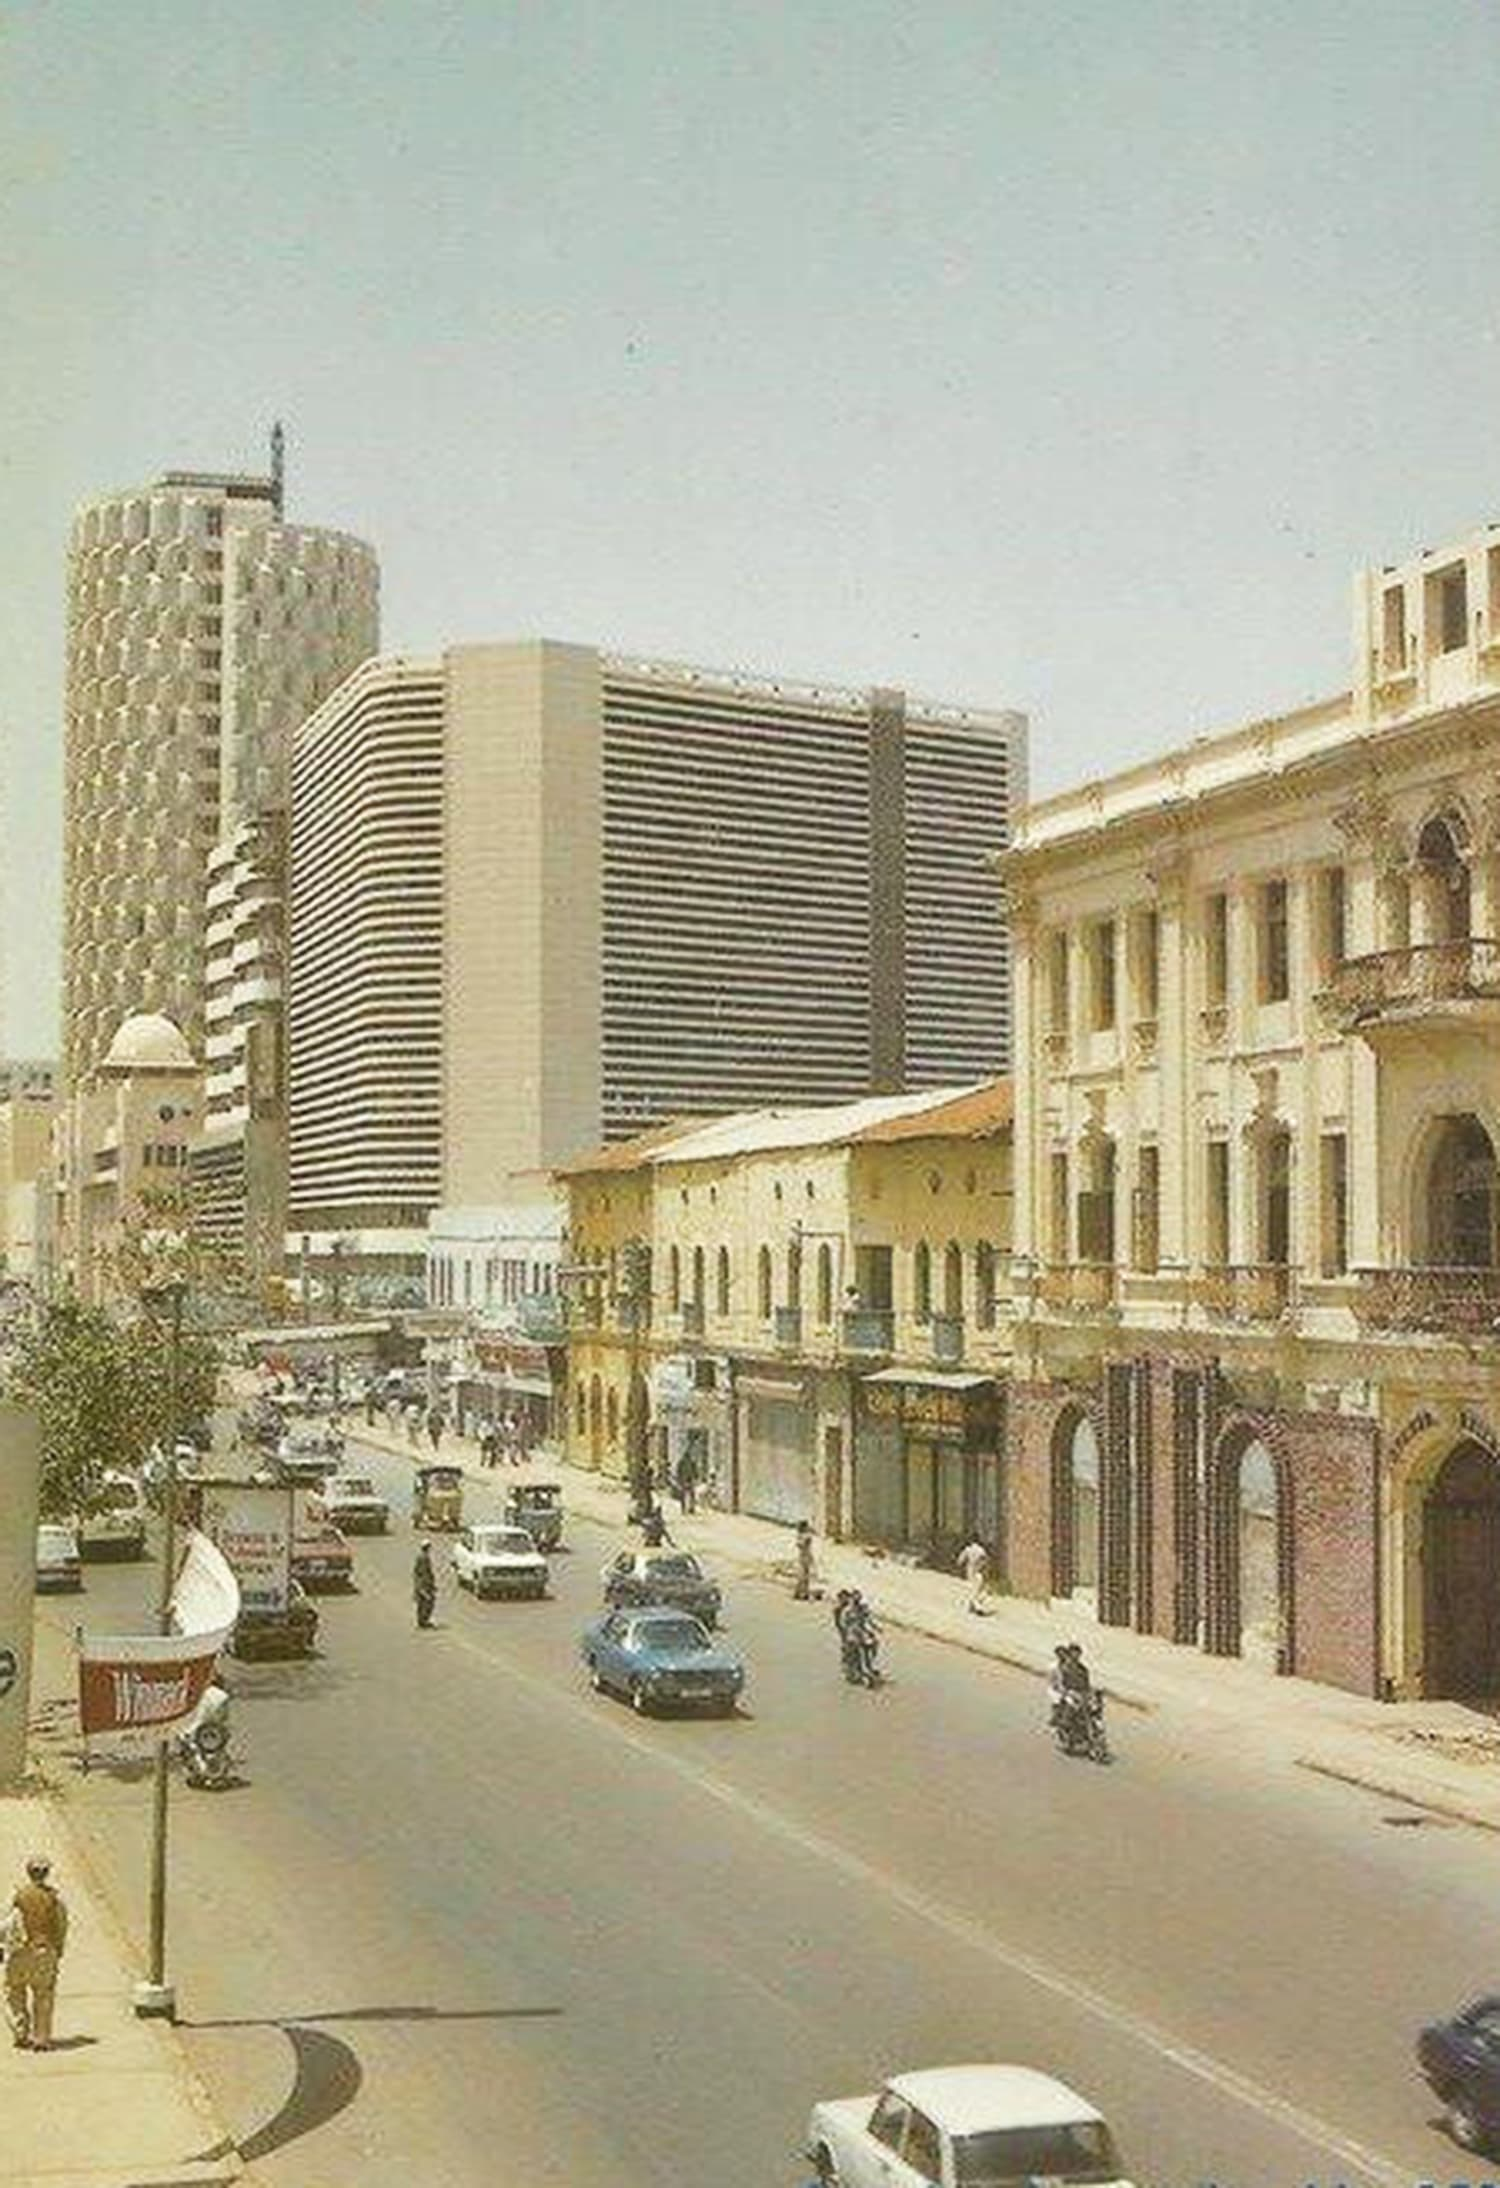 McLeod Road in 1975.